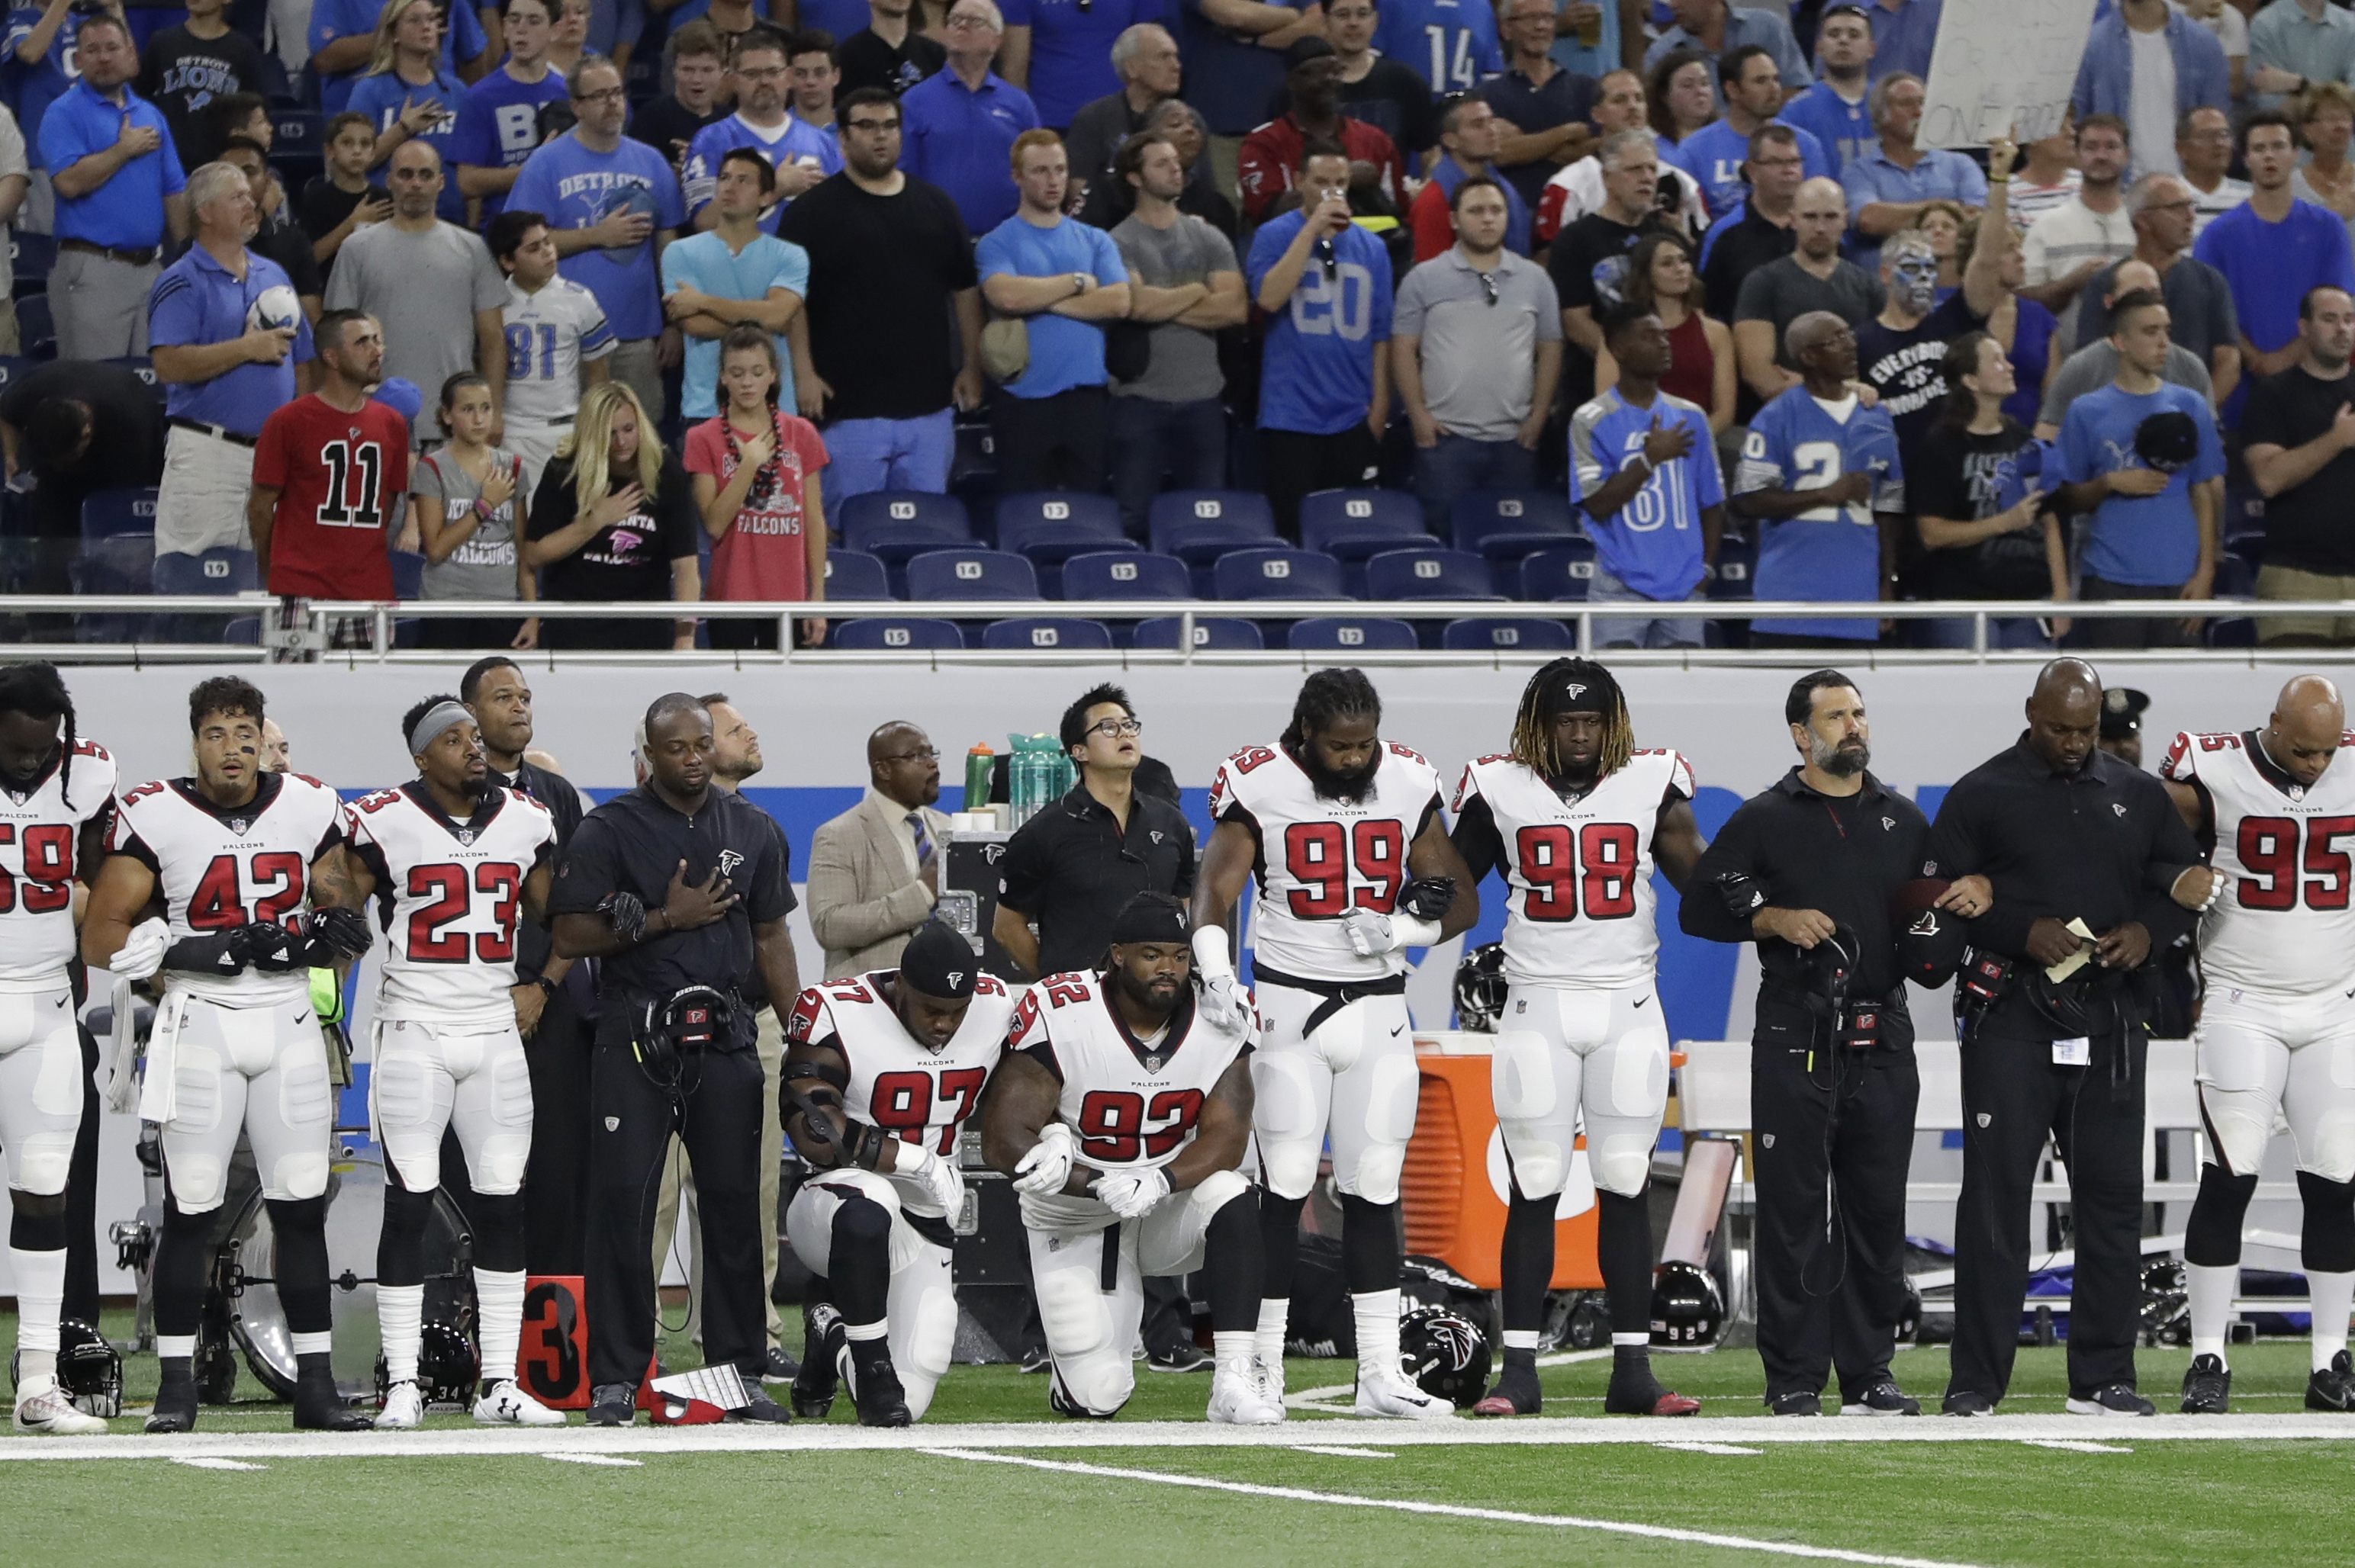 Atlanta Falcons defensive tackles Grady Jarrett (97) and Dontari Poe (92) take a knee during the national anthem before an NFL football game